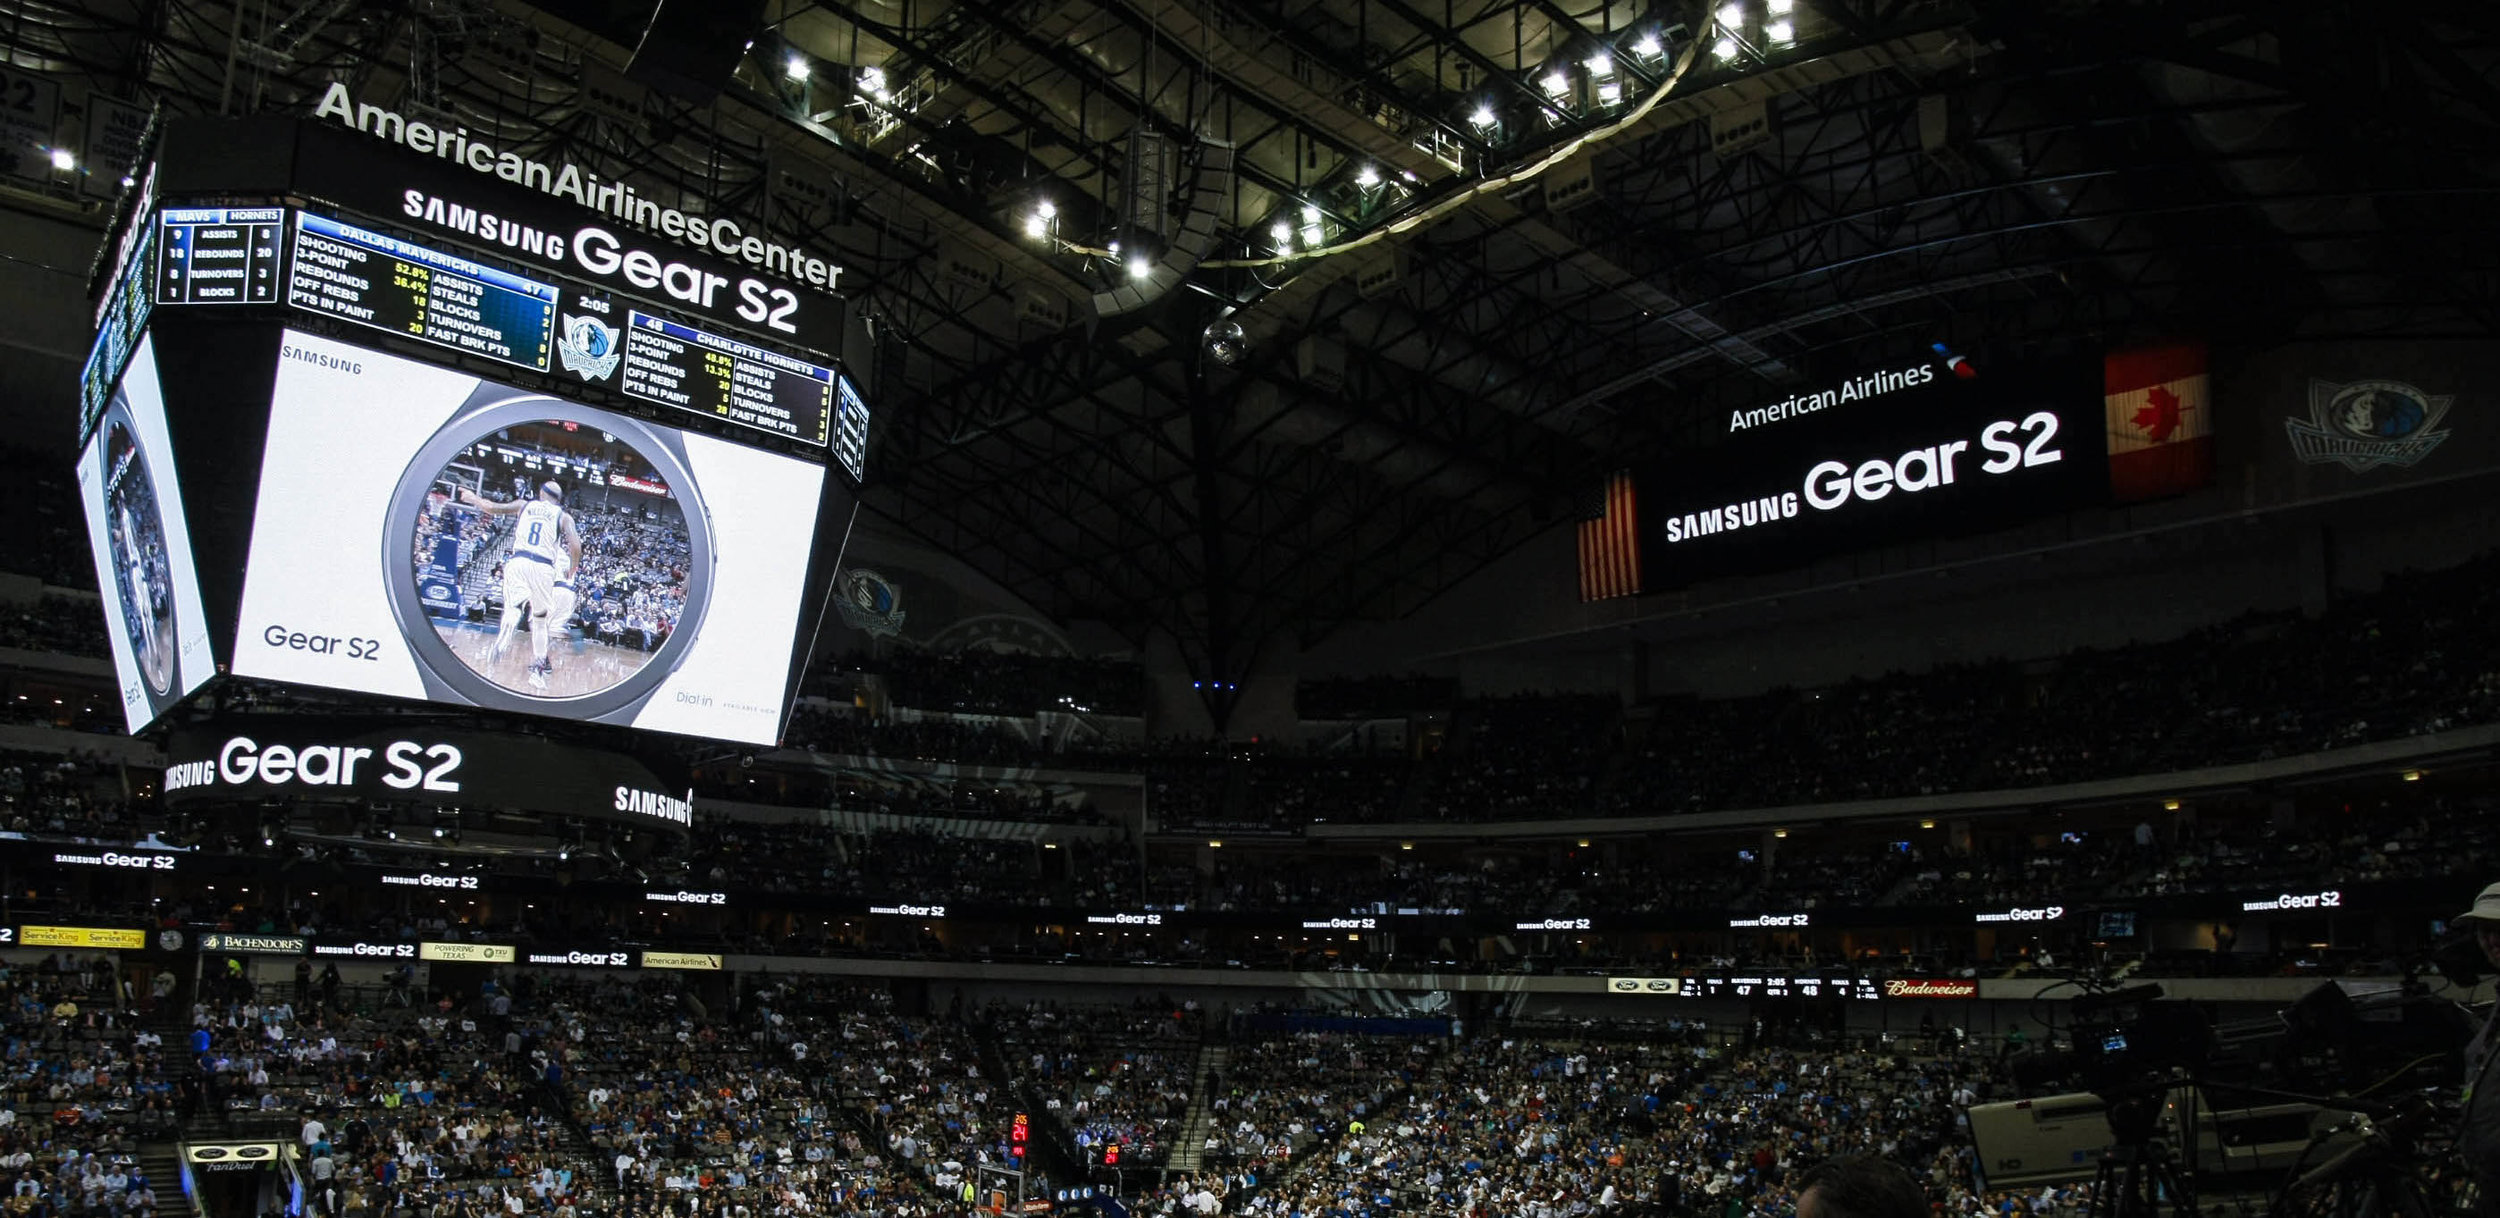 Samsung - Dallas Mavericks - Branded Feature and LED